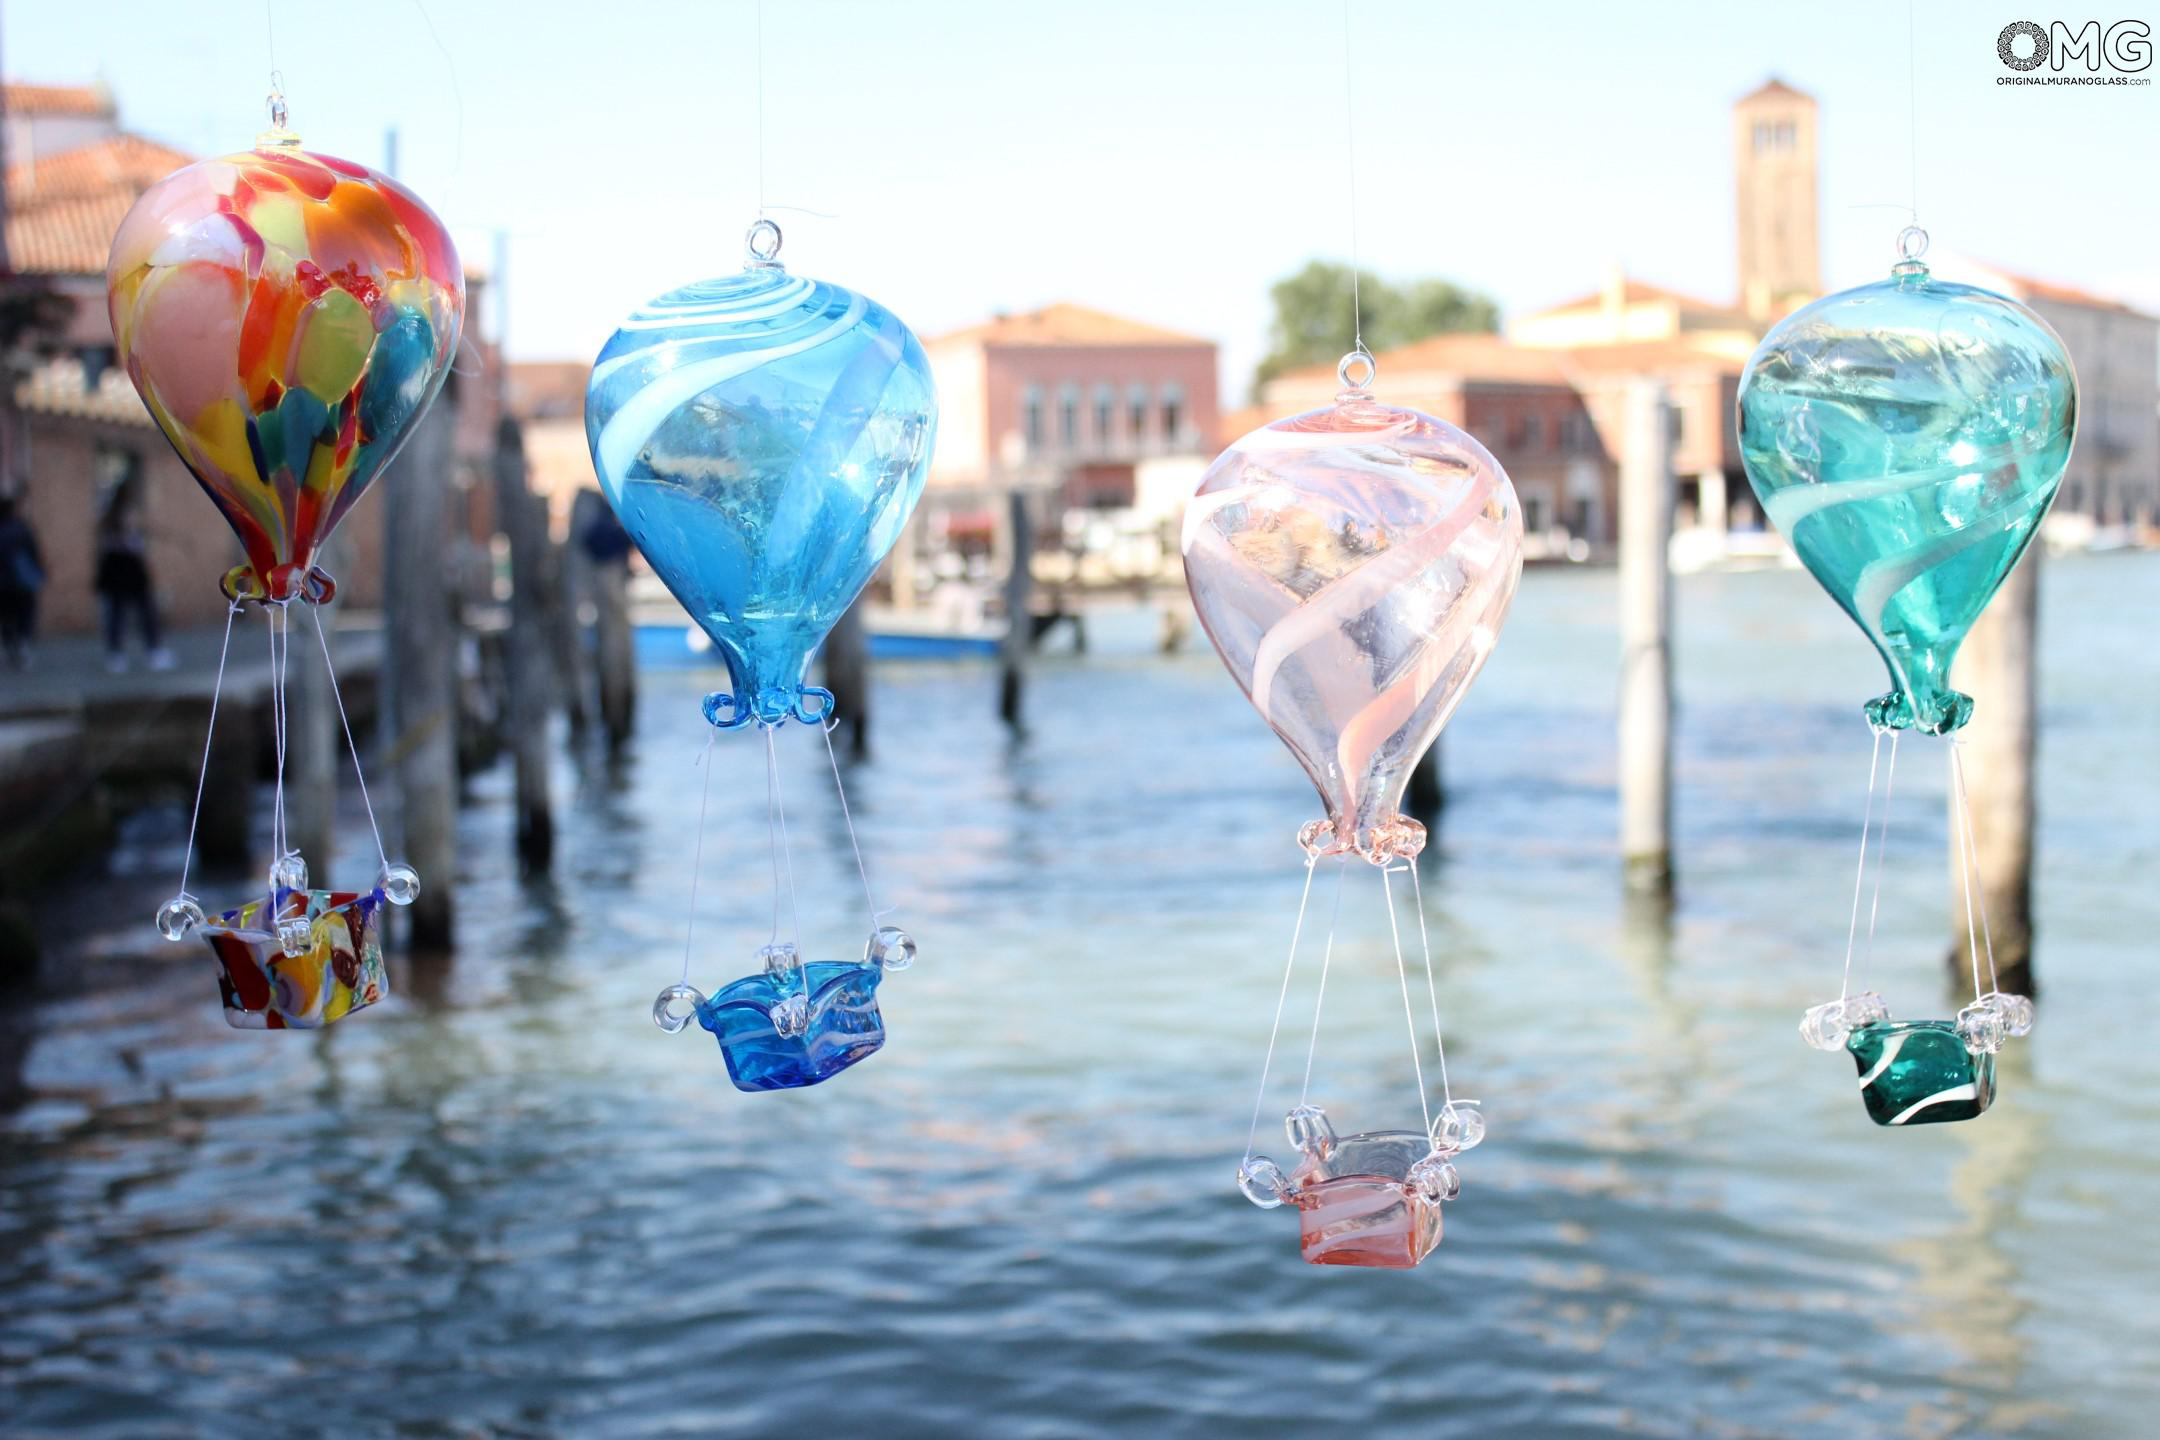 Hot Air Balloon in Original Murano Glass OMG - to hang as decoration - Blue